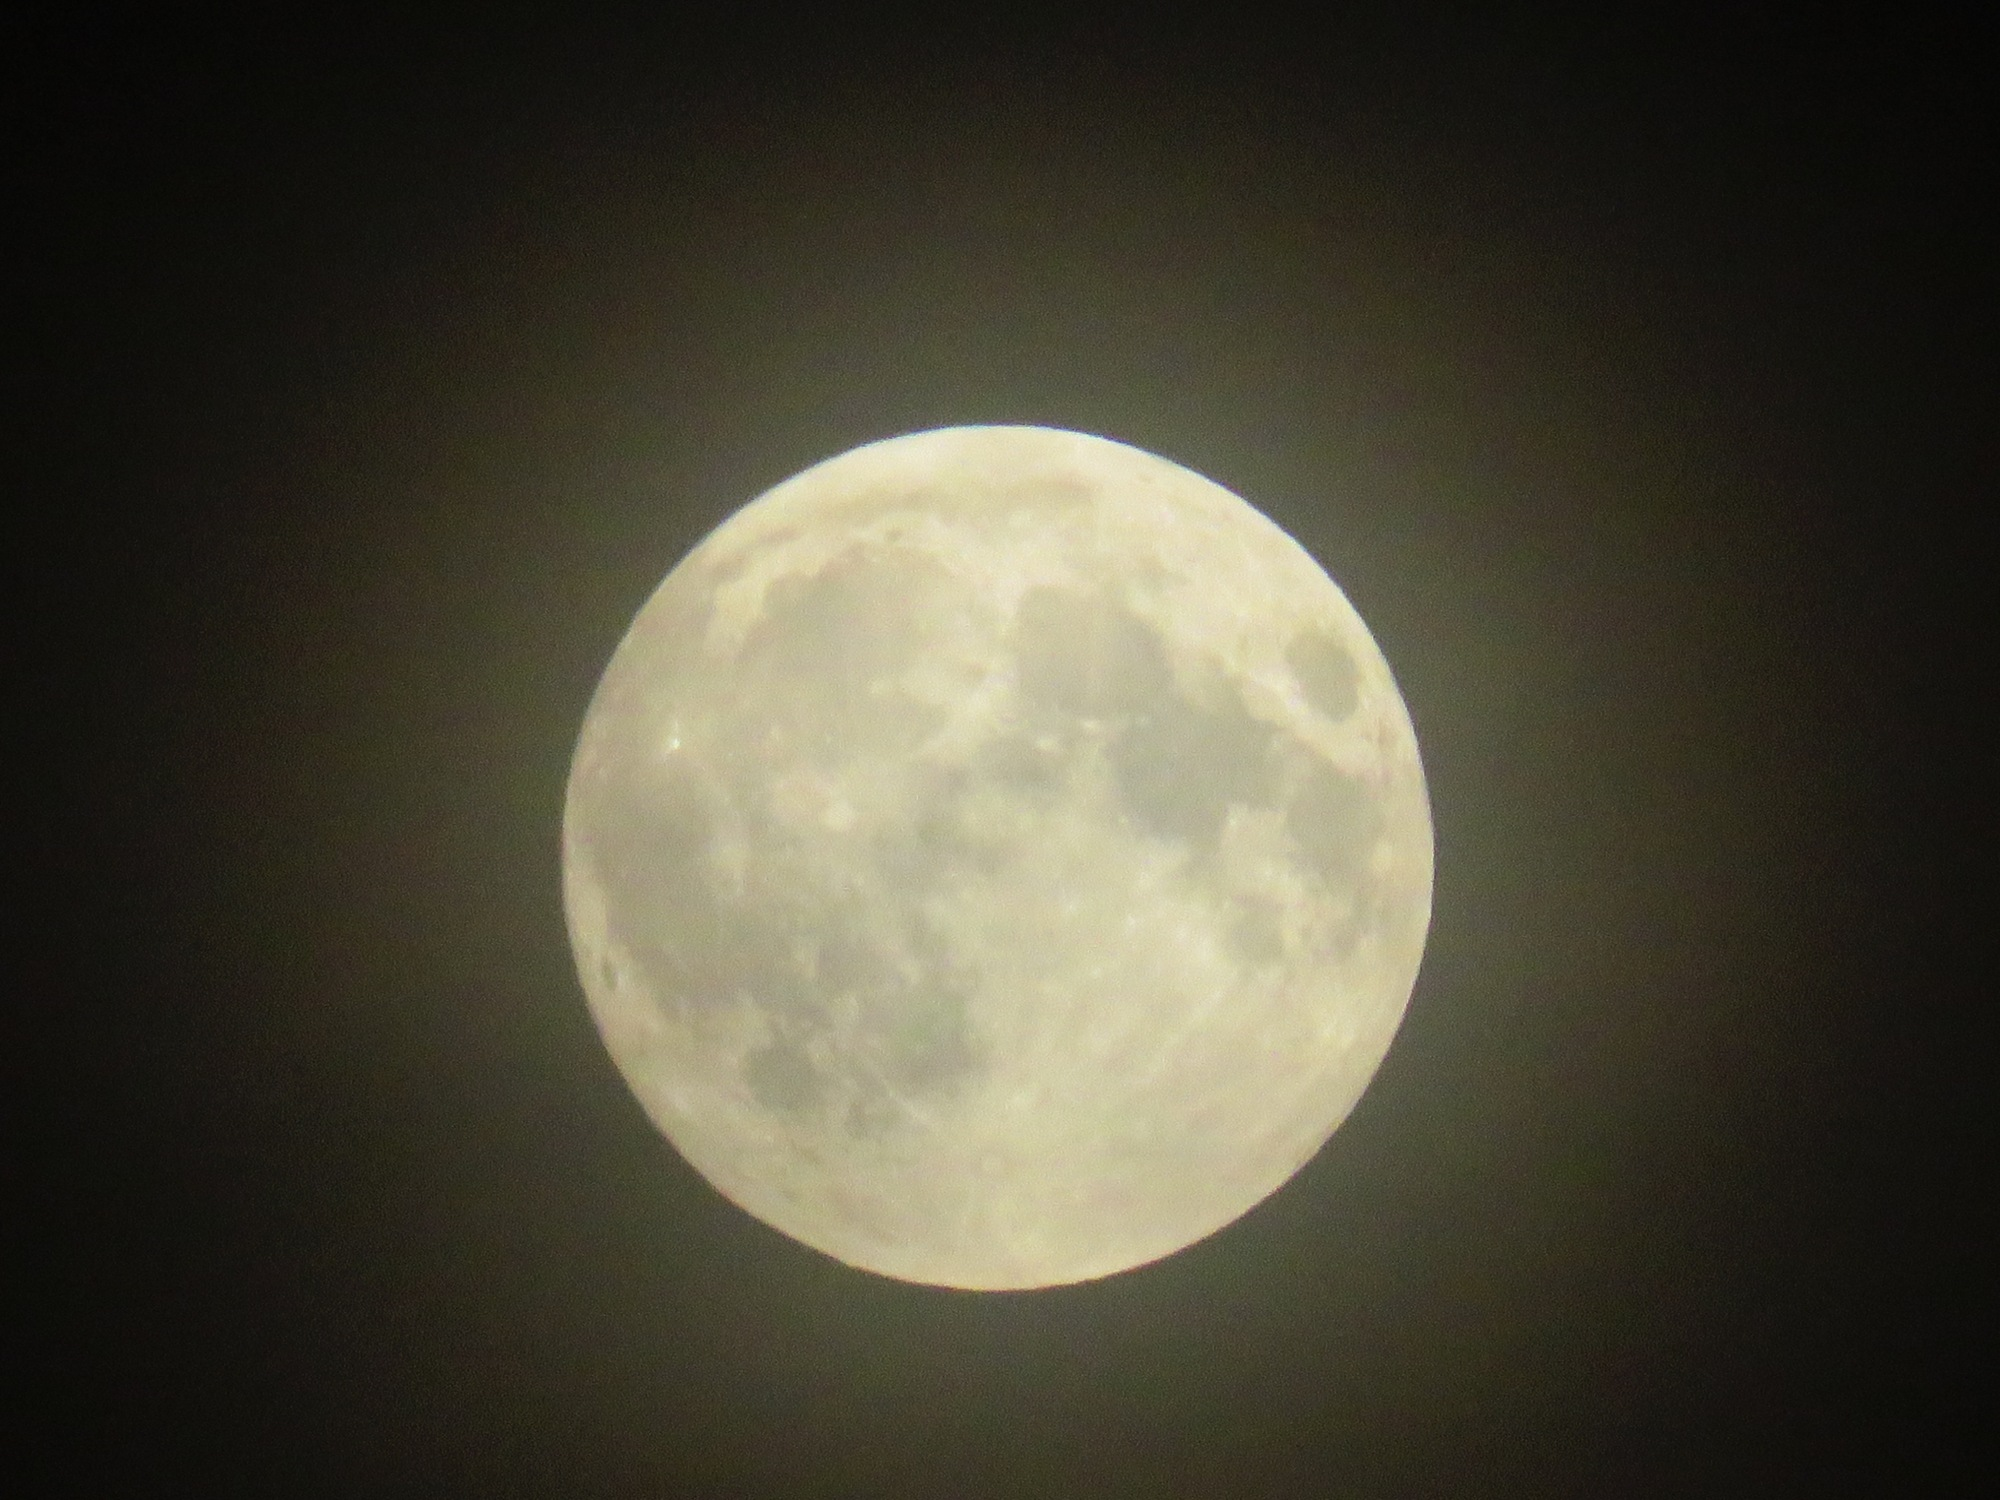 When the moon has a glow by siobhan @ www.siobhanmariephotography.com